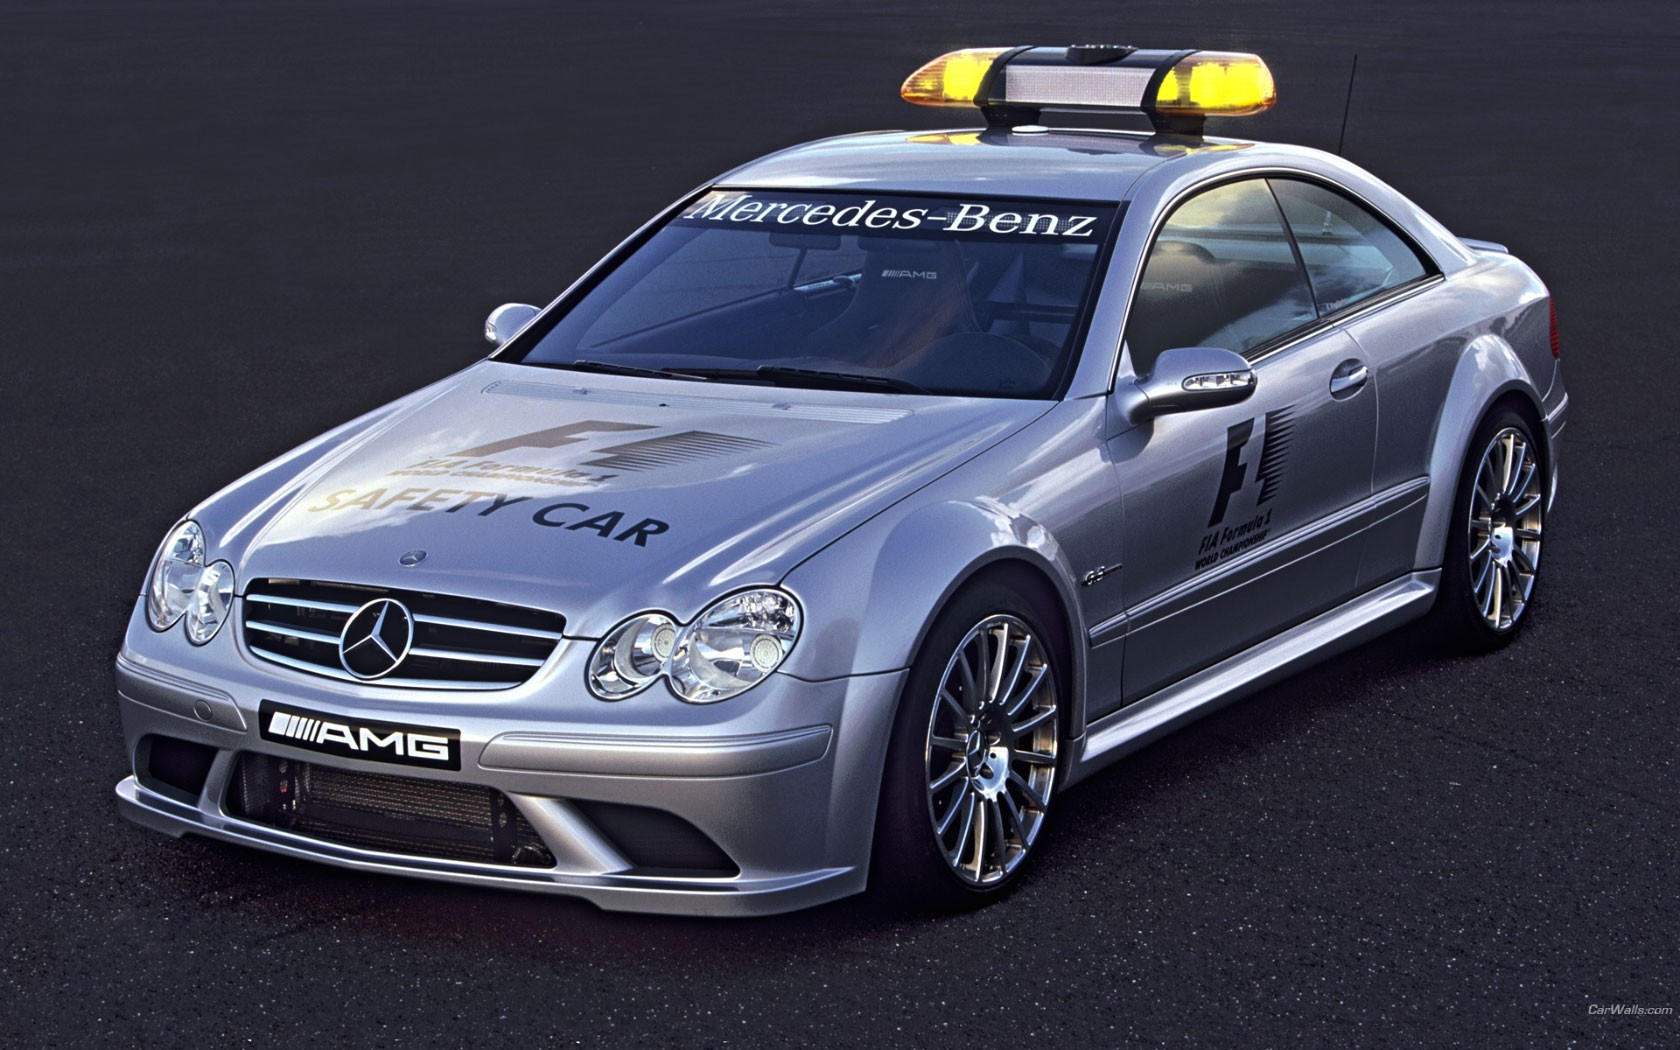 cars Mercedes-Benz Mercedes Benz CLK HD Wallpaper